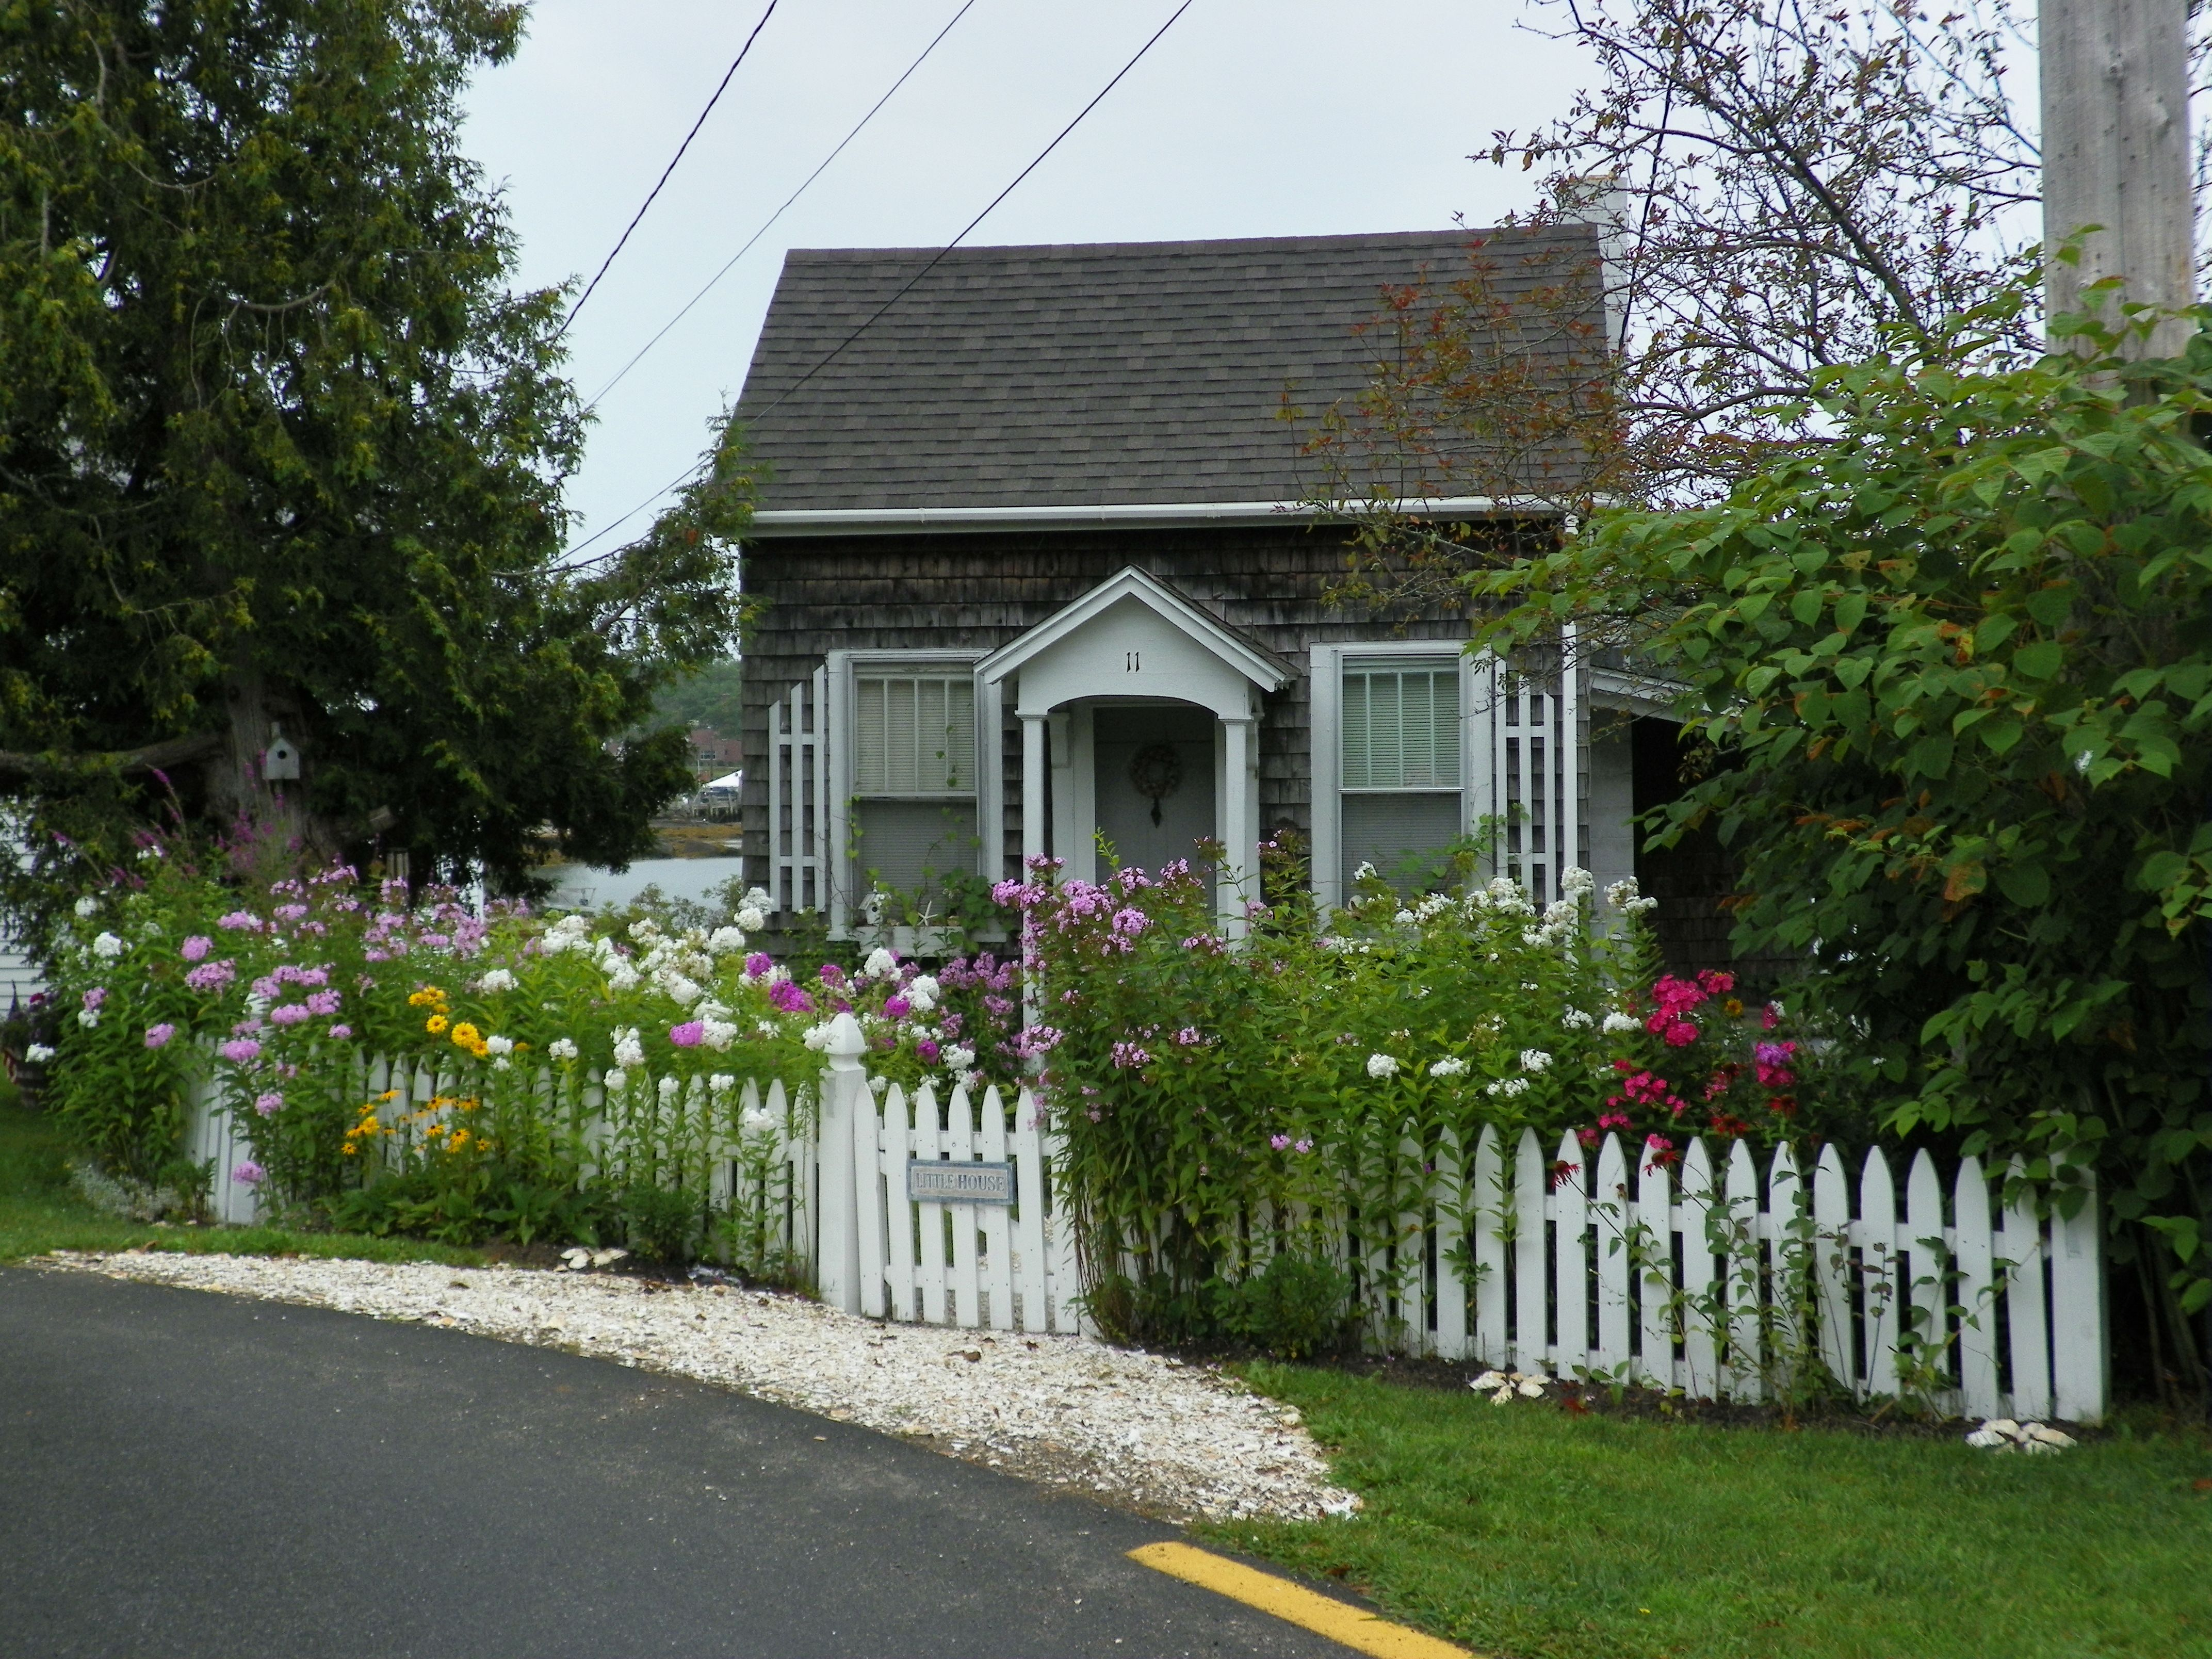 Tiny Little House In Boothbay With Beautiful Flower Gardens Tiny Little Houses Cute Small Houses Small House